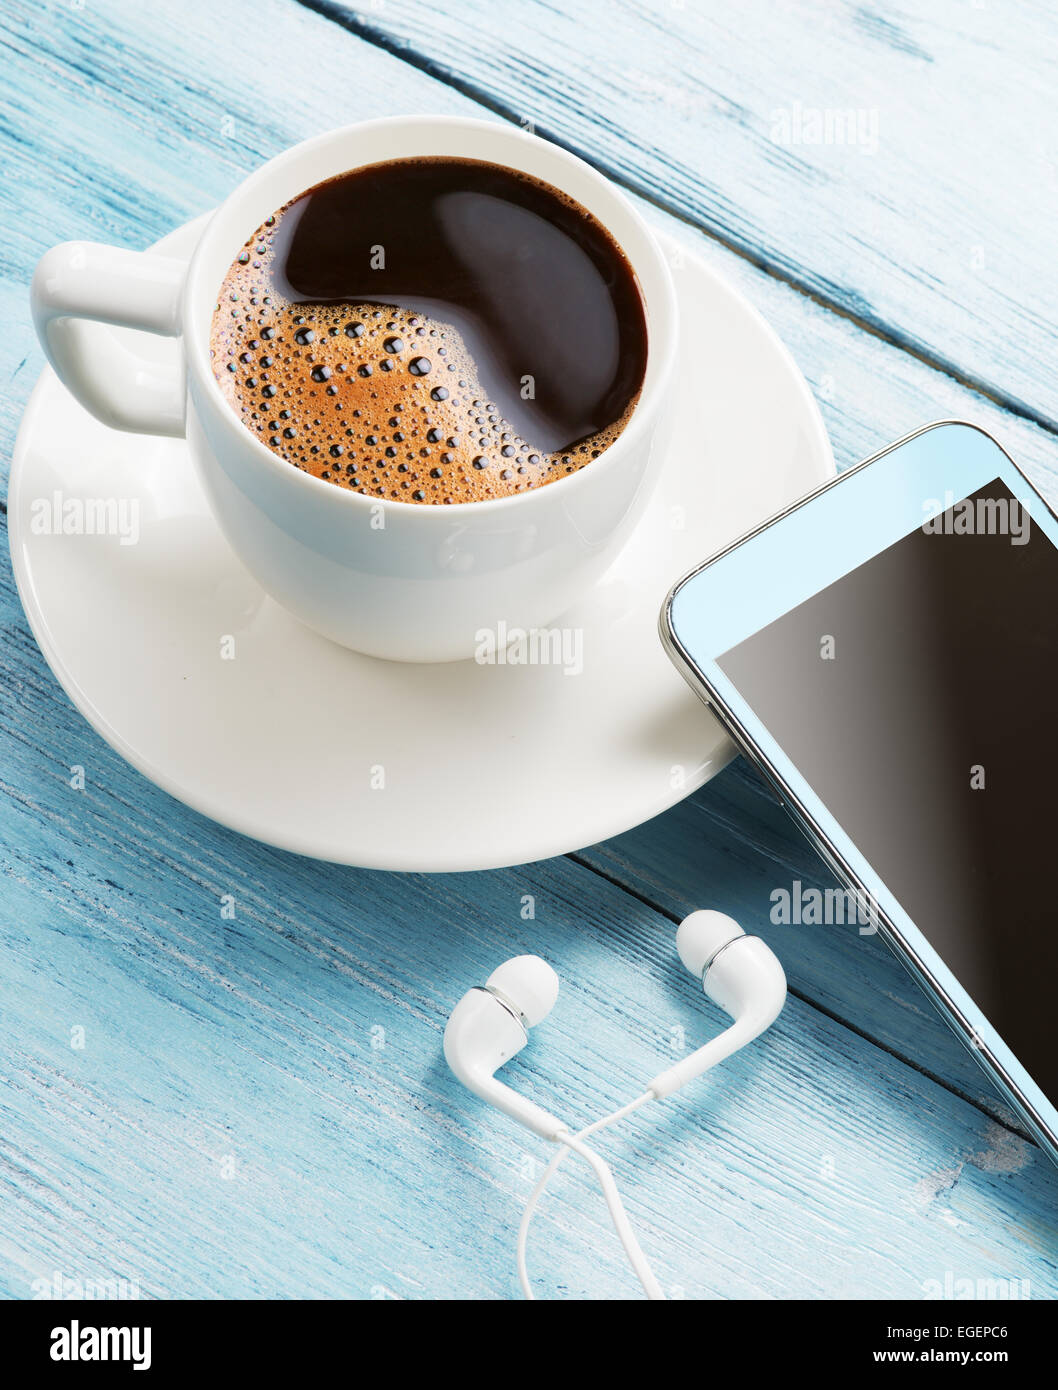 Coffee break. Office table with different gadgets on it. Top view. - Stock Image